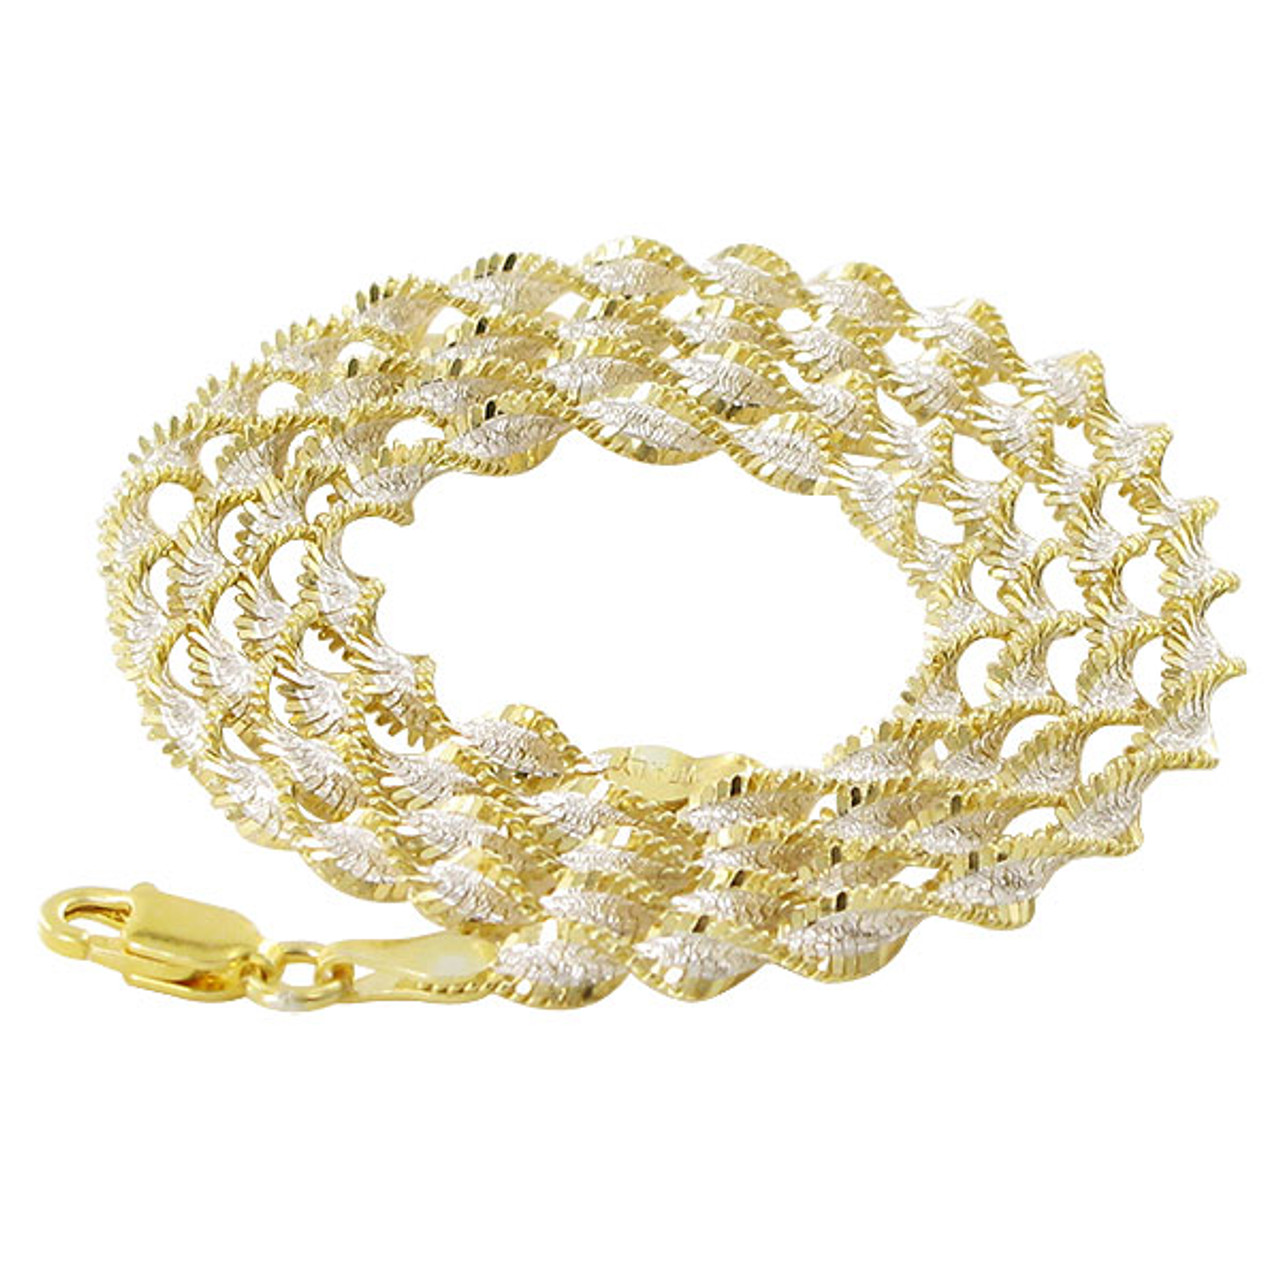 18k Gold over Silver 3mm Twisted Chain Necklace